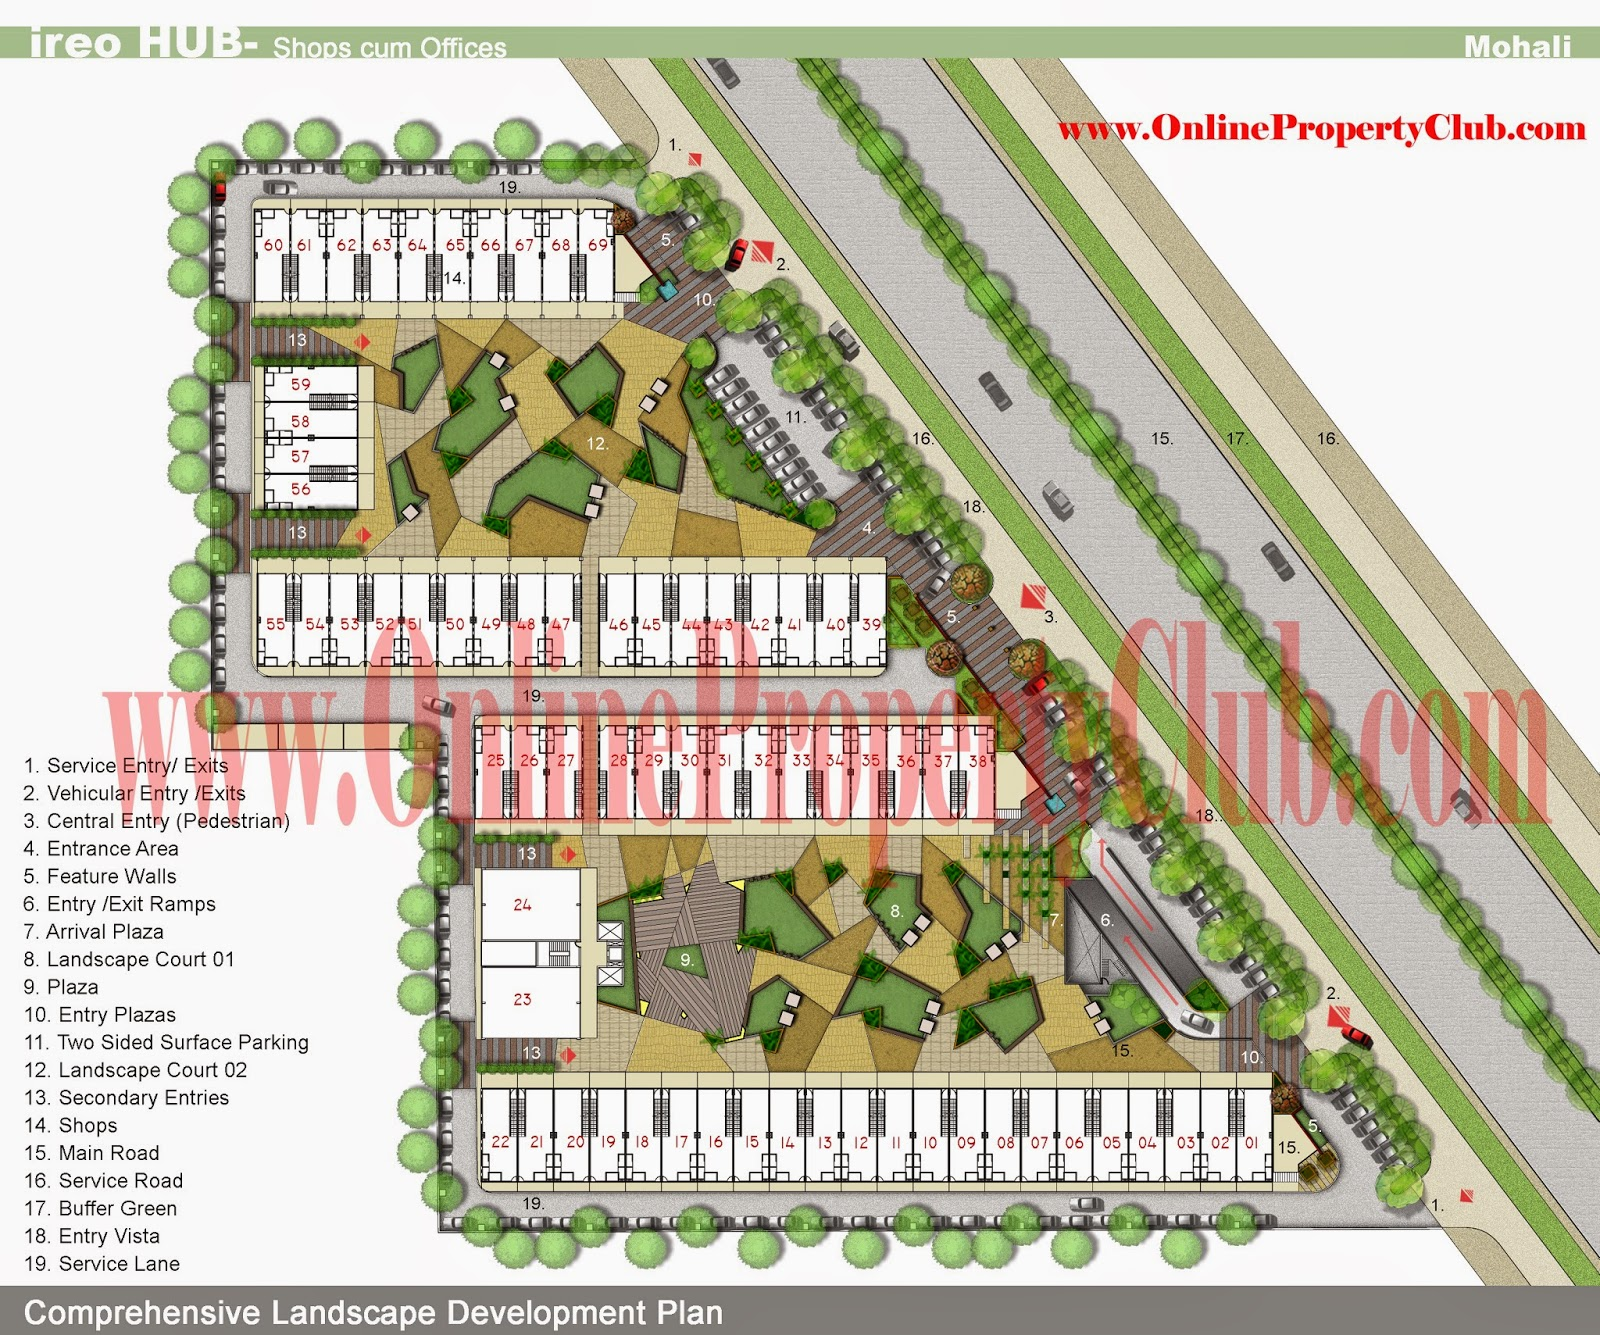 IREO Hub-Commercial SCO-Showroom Plots in Sector-98 Mohali